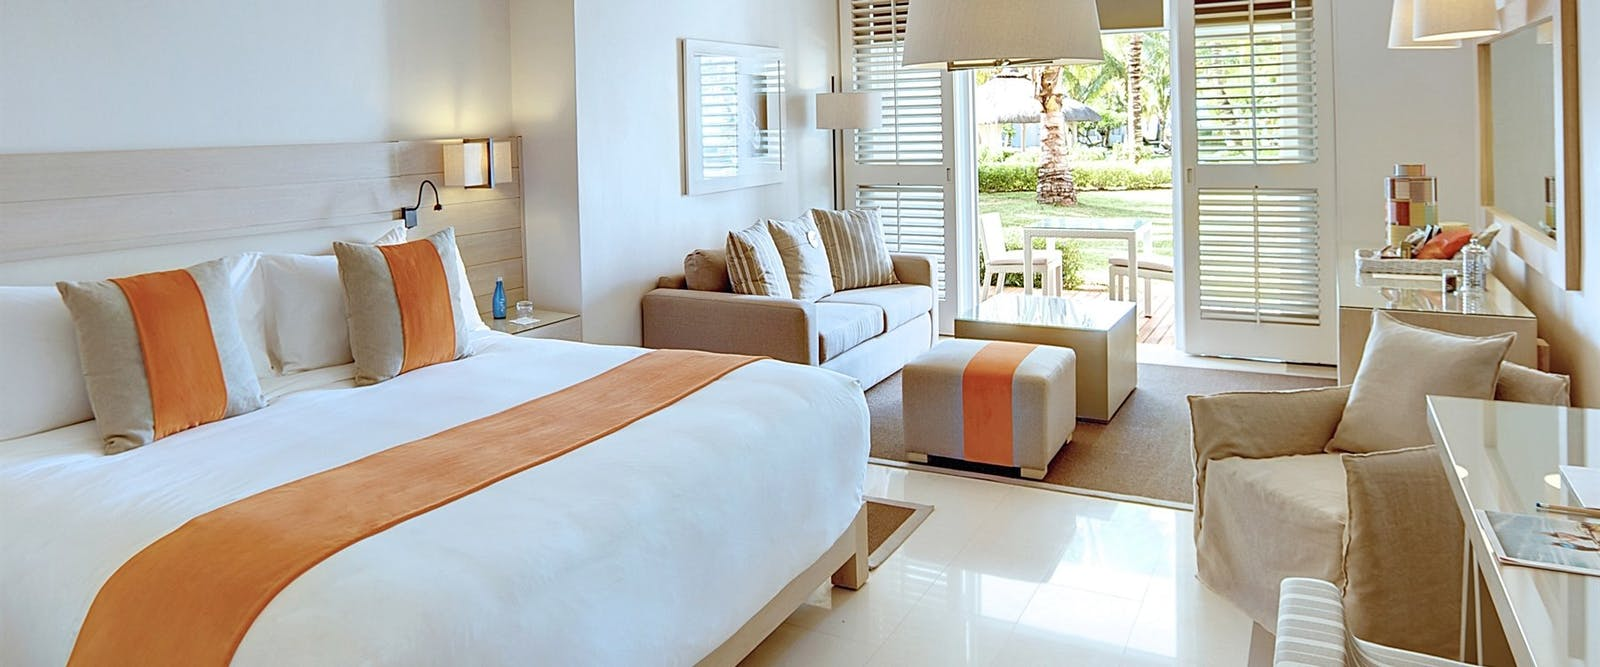 Junior Suite at LUX* Belle Mare, Mauritius